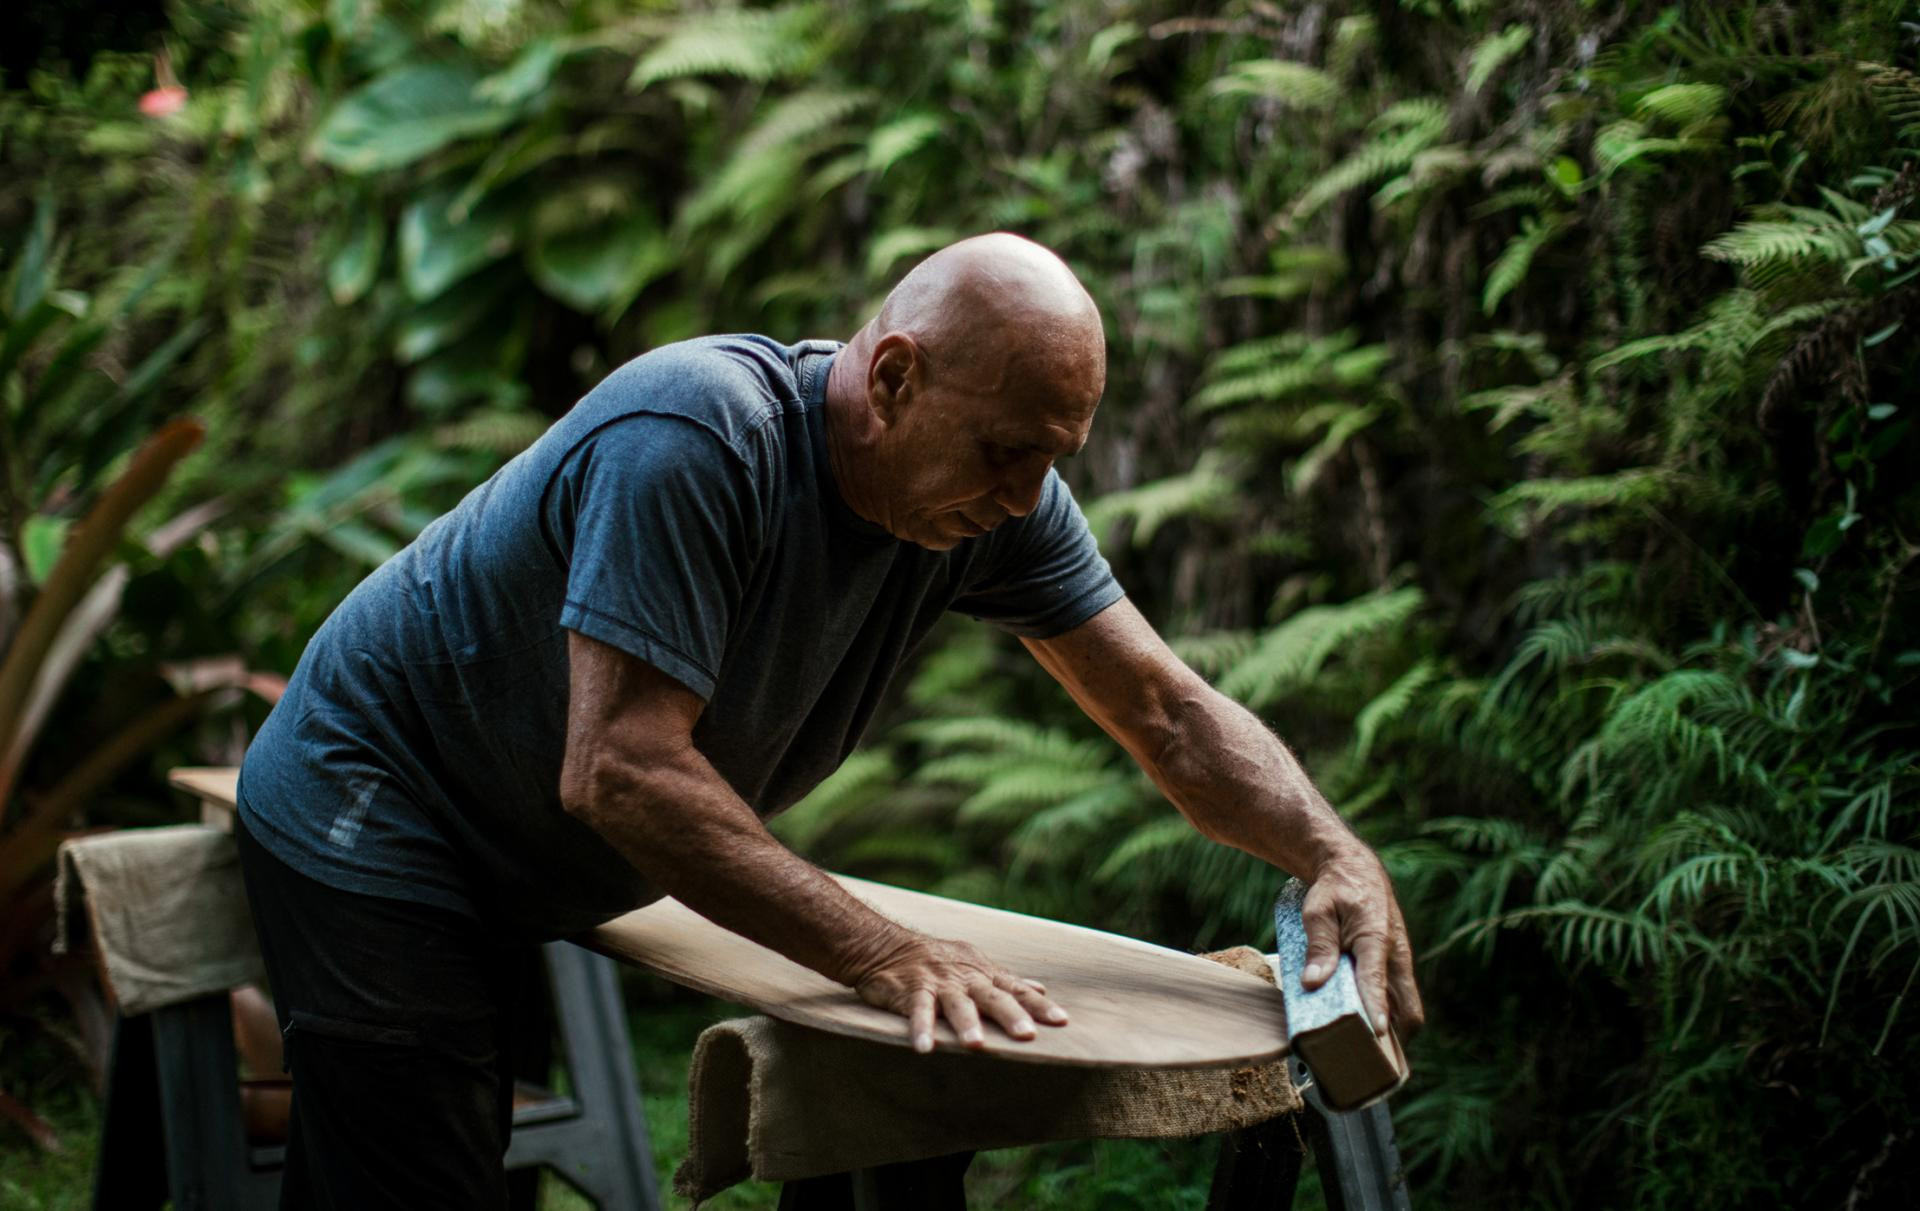 Hawaiin Culture, craftsman